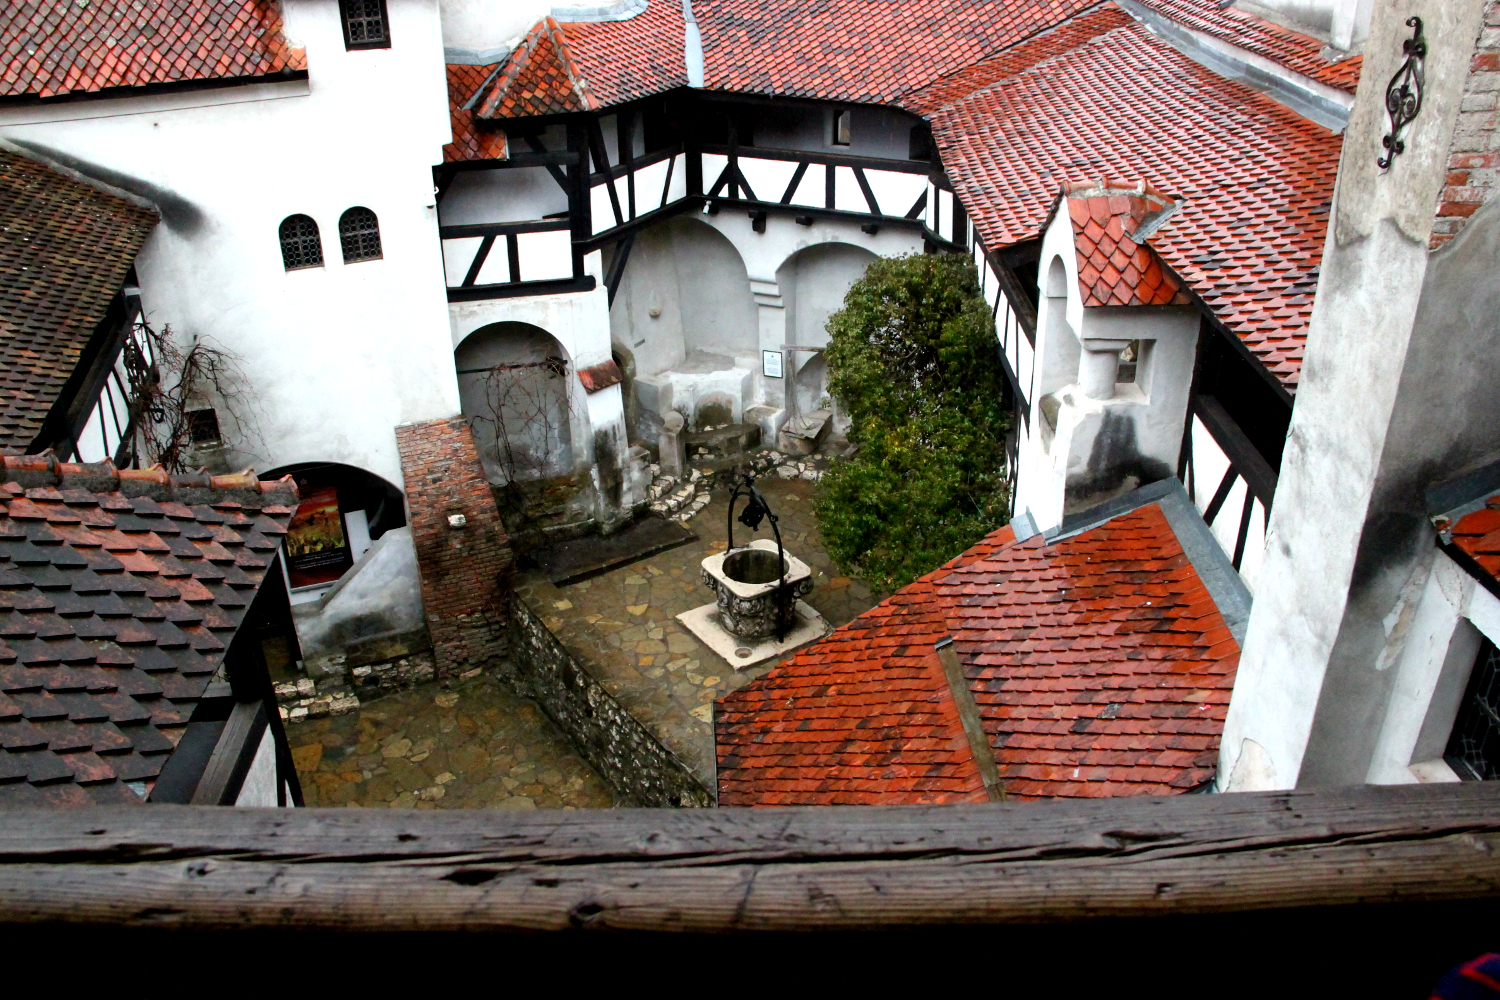 Bran Castle - view of the interior garden